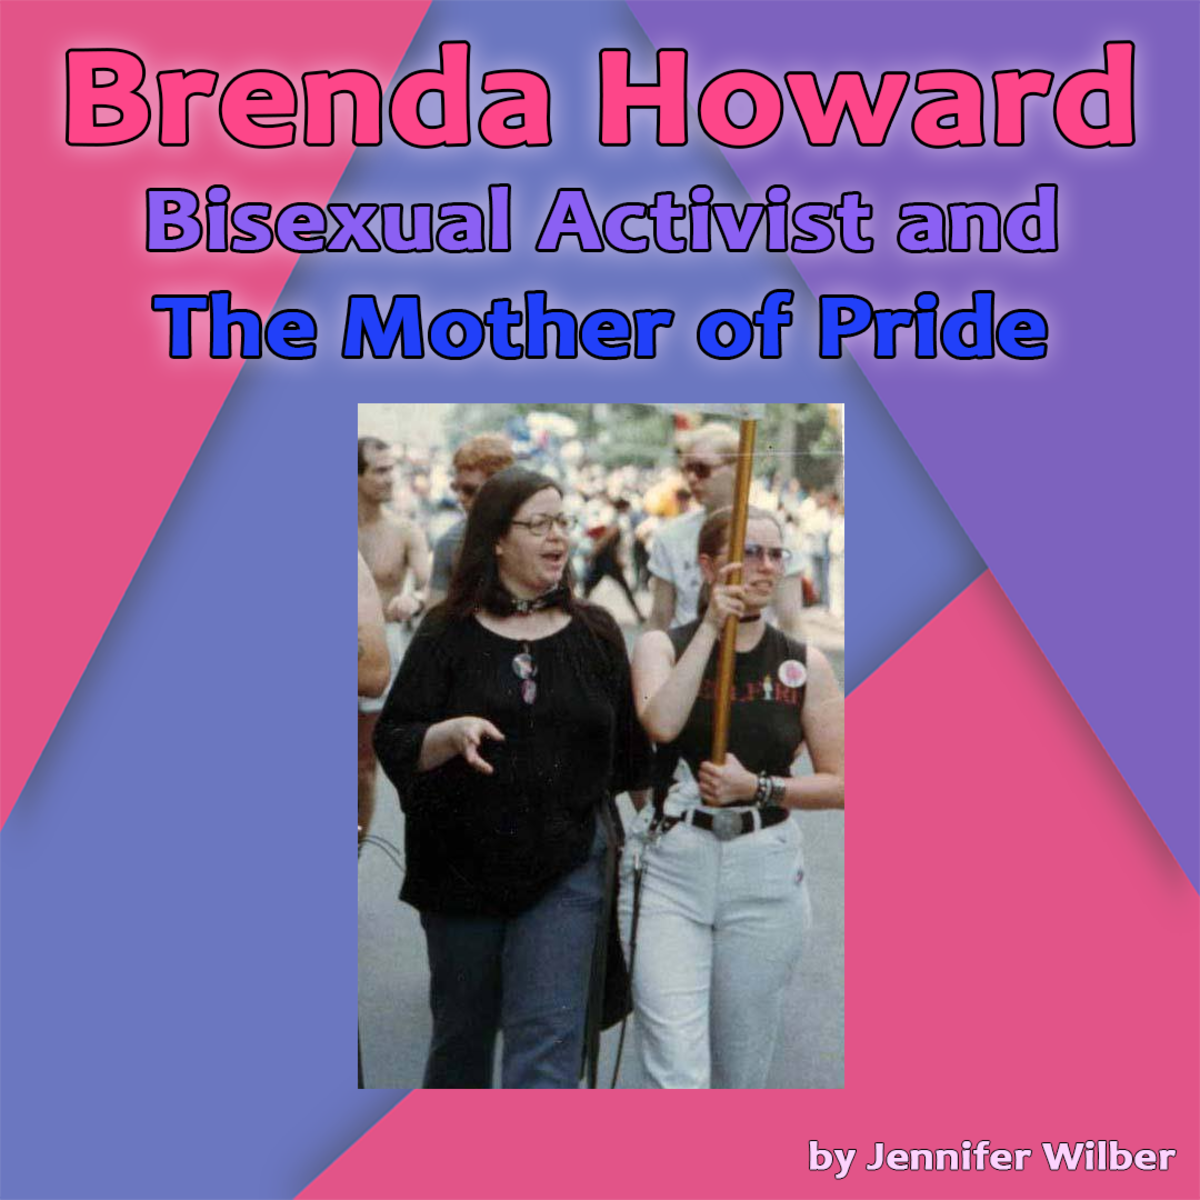 Brenda Howard: Bisexual Activist and The Mother of Pride